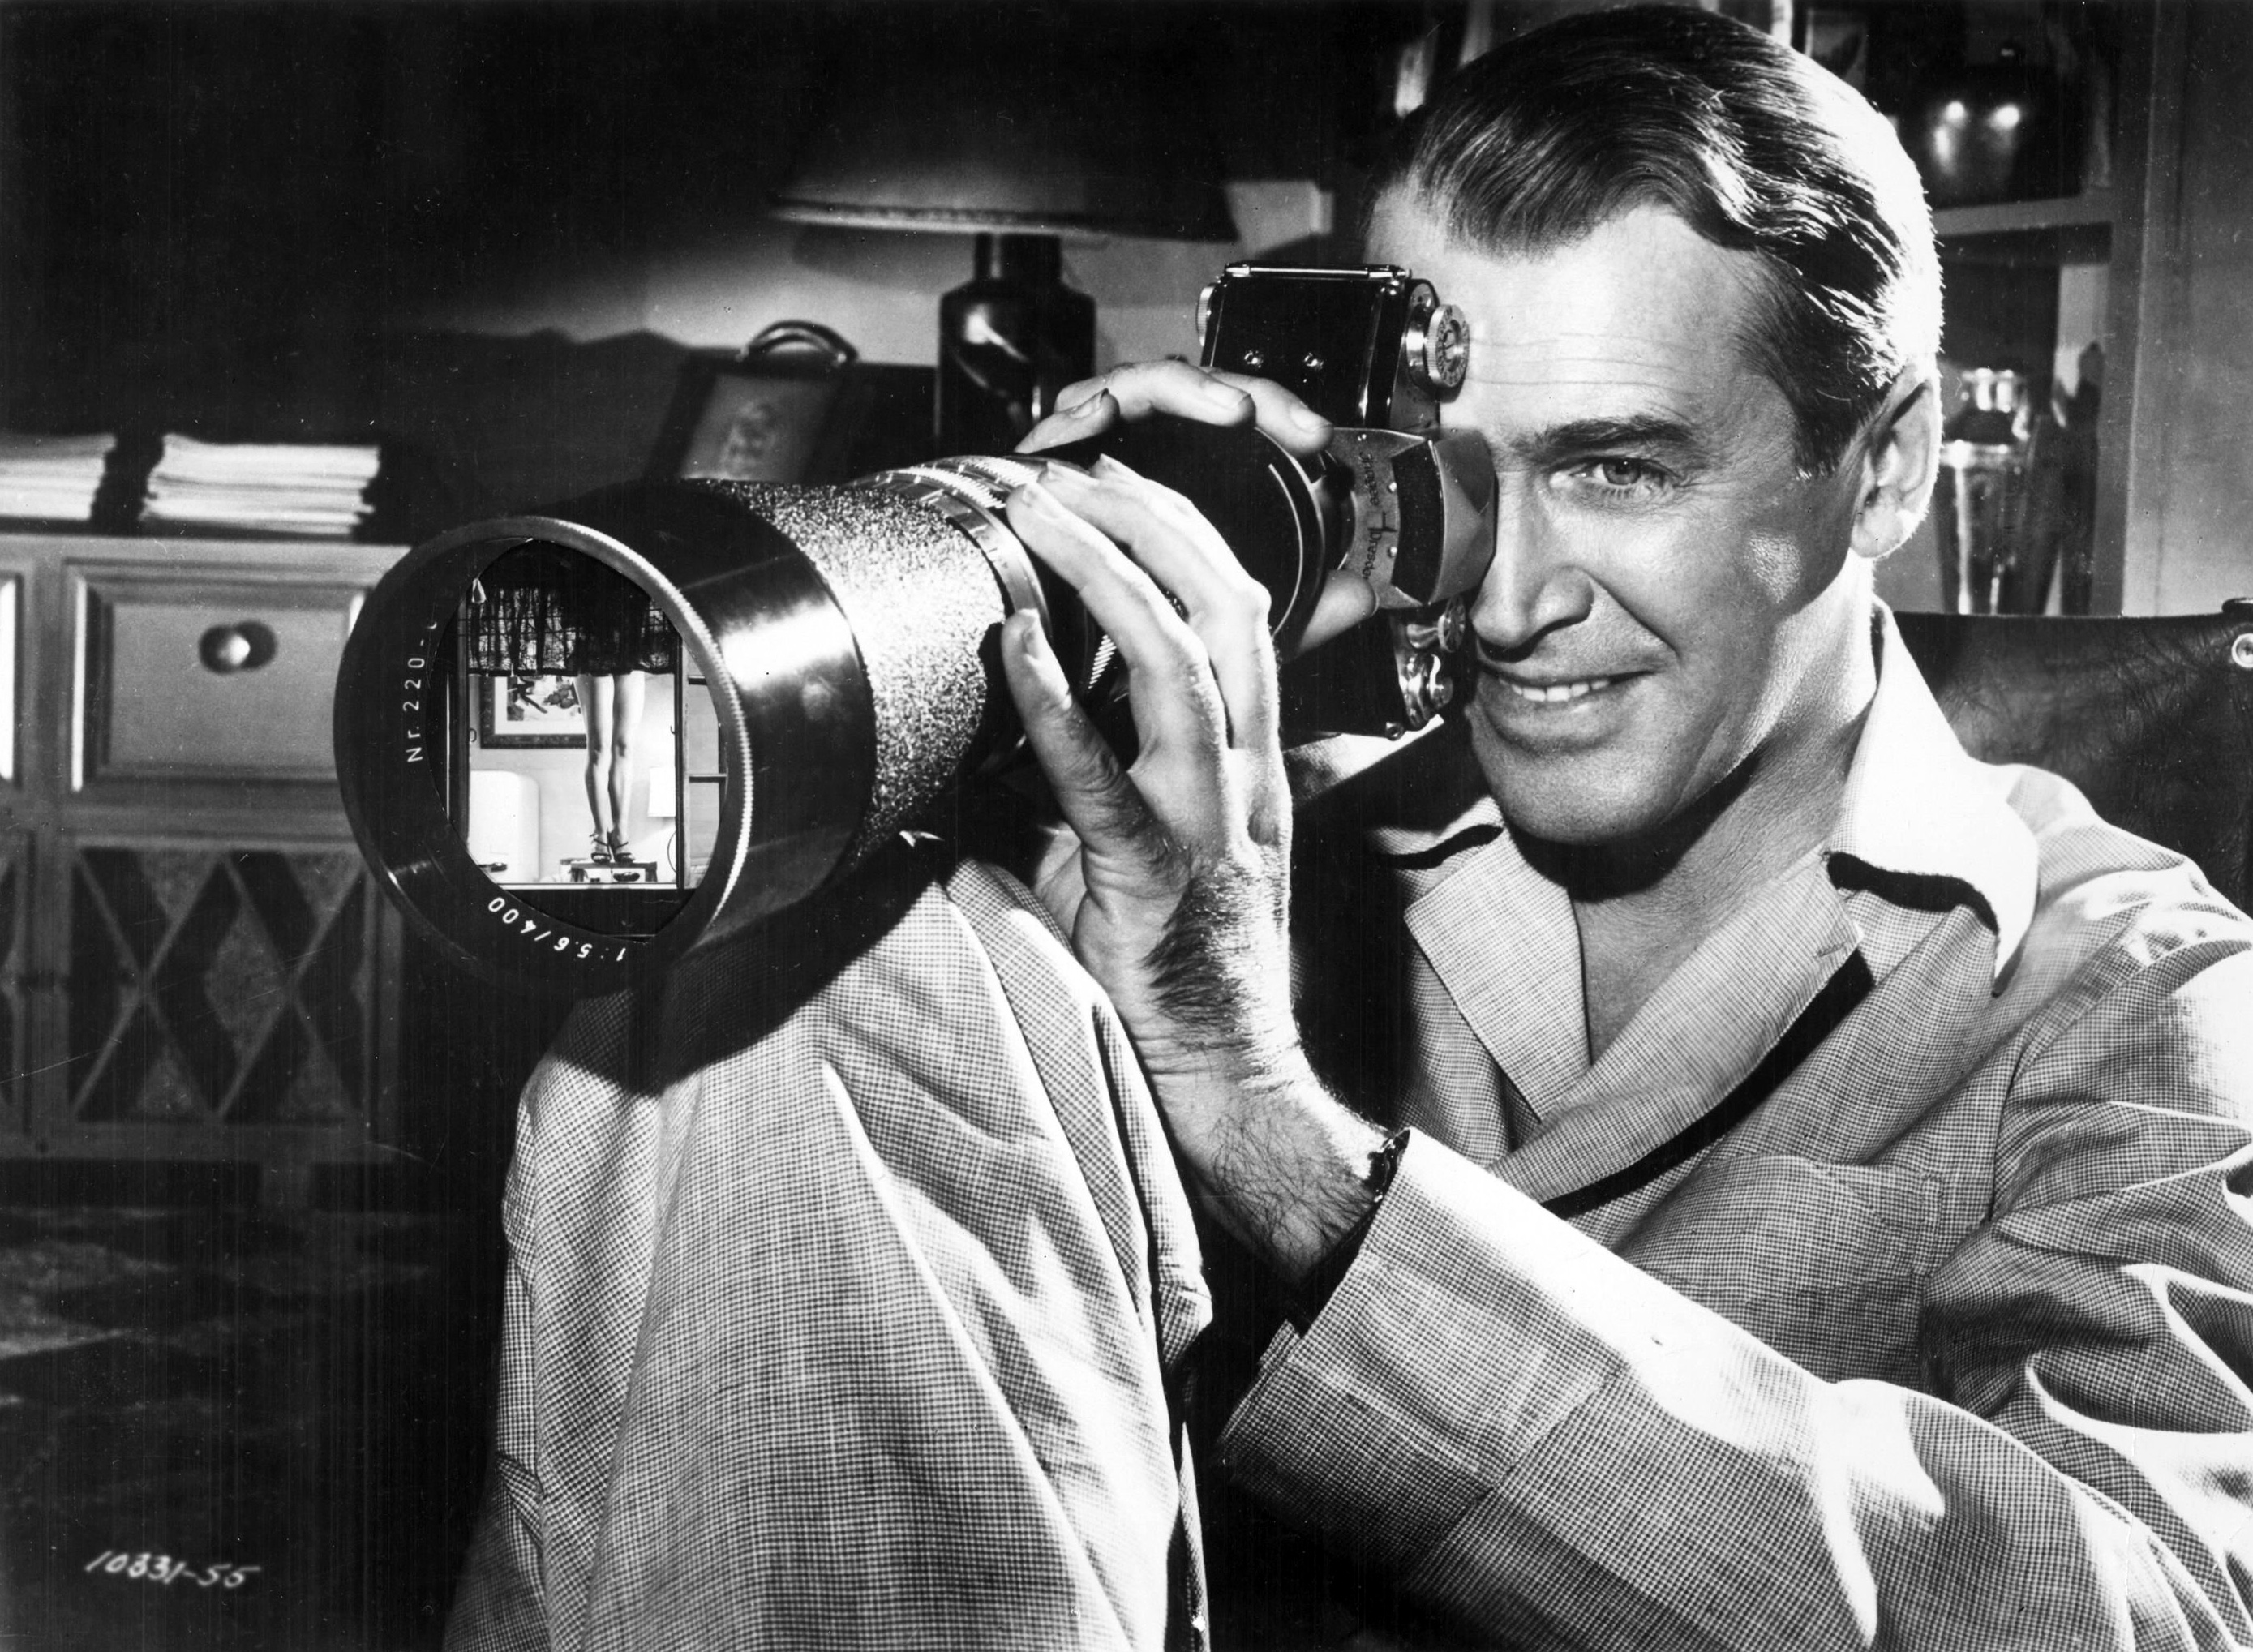 an analysis of the movie rear window Watching alfred hitchcock's 1954 thriller rear window is an interesting and somewhat unusual experience on one hand you're a passive spectator watching a film about a recently-incapacitated photographer spying on his neighbors out of boredom, but on the other you are an extension of good ol' jimmy.